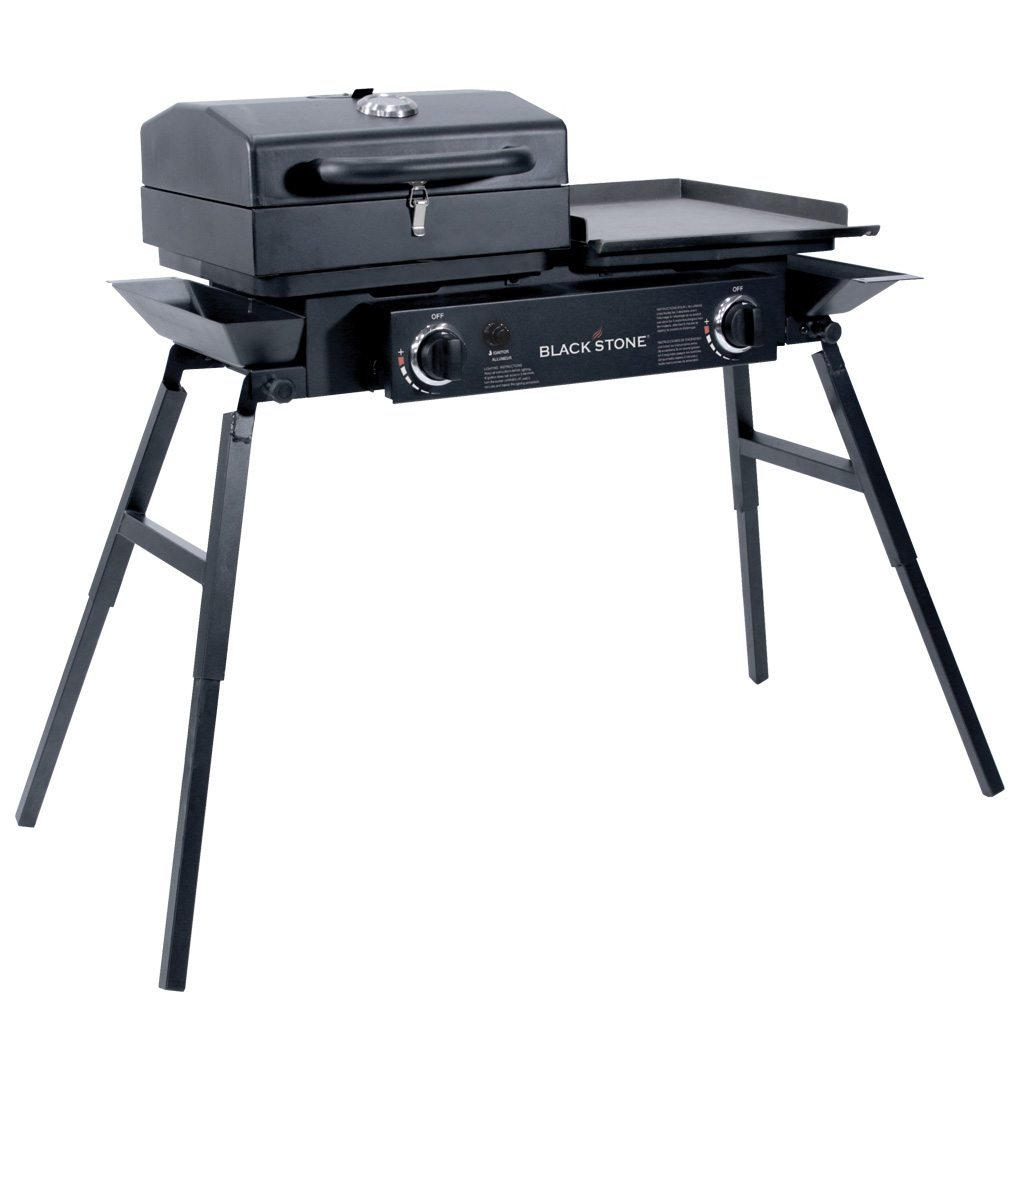 amazon com blackstone grills tailgater portable gas grill and